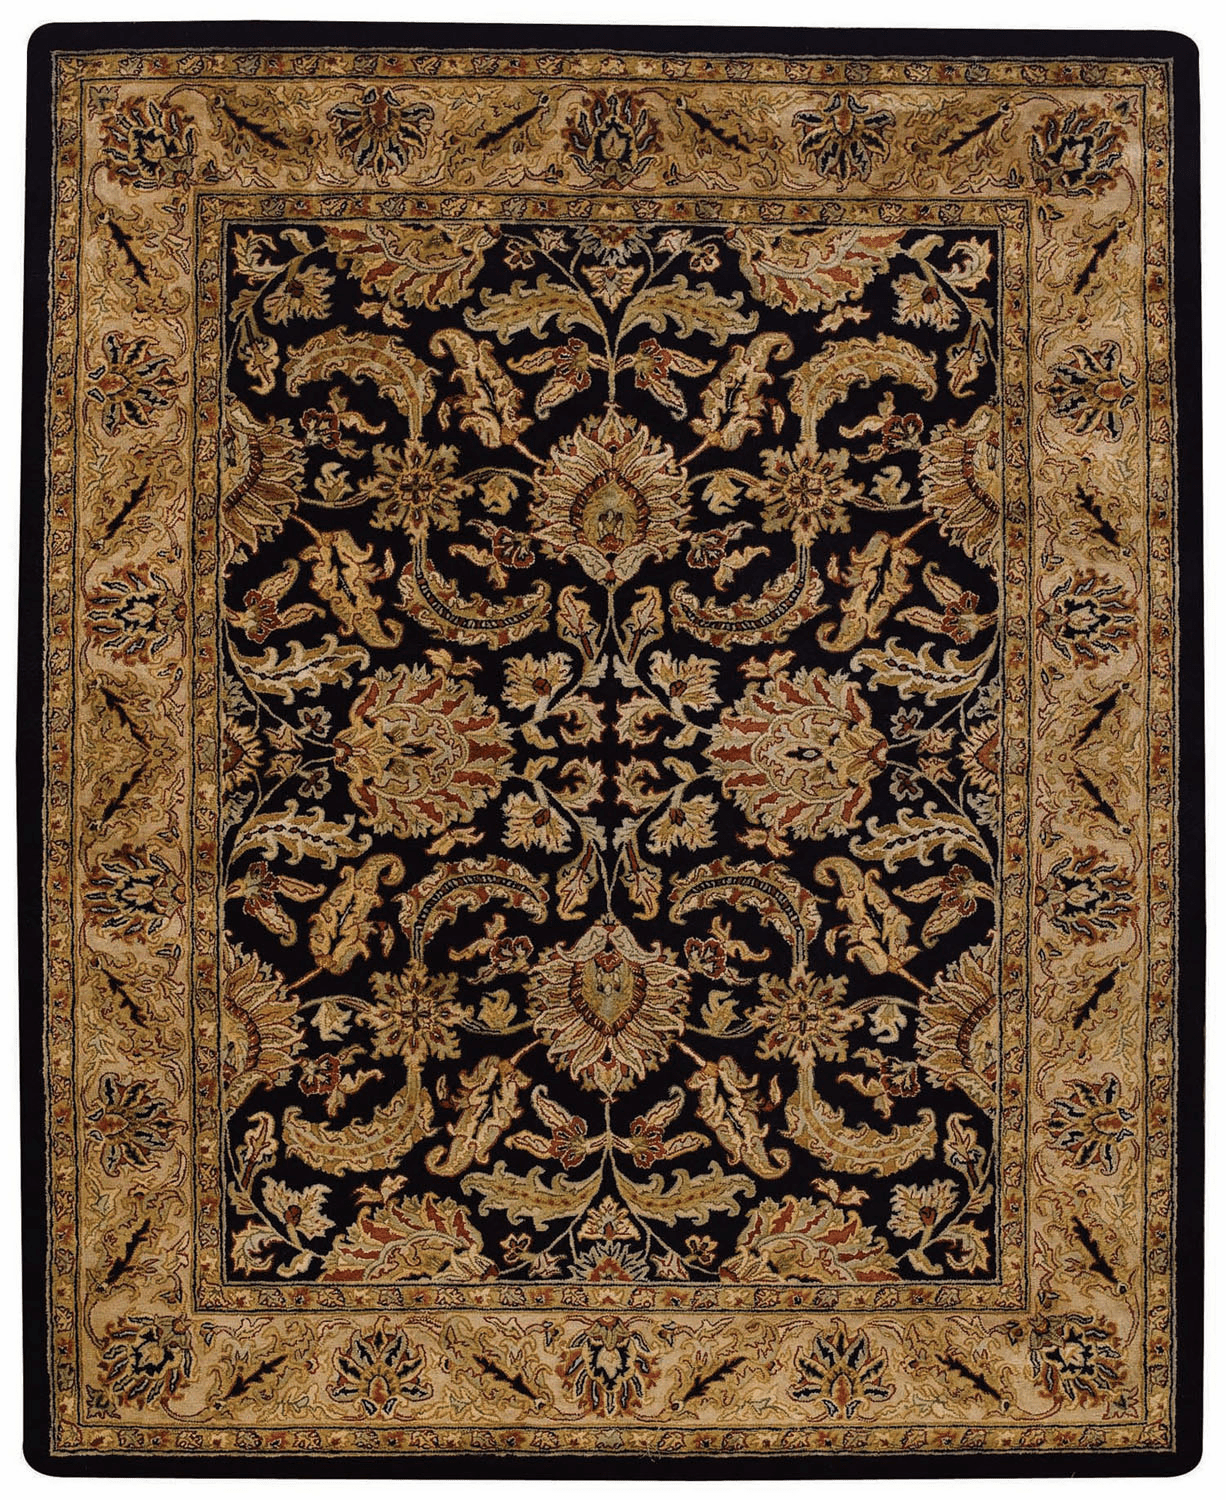 Hand Tufted Black and Beige Rug